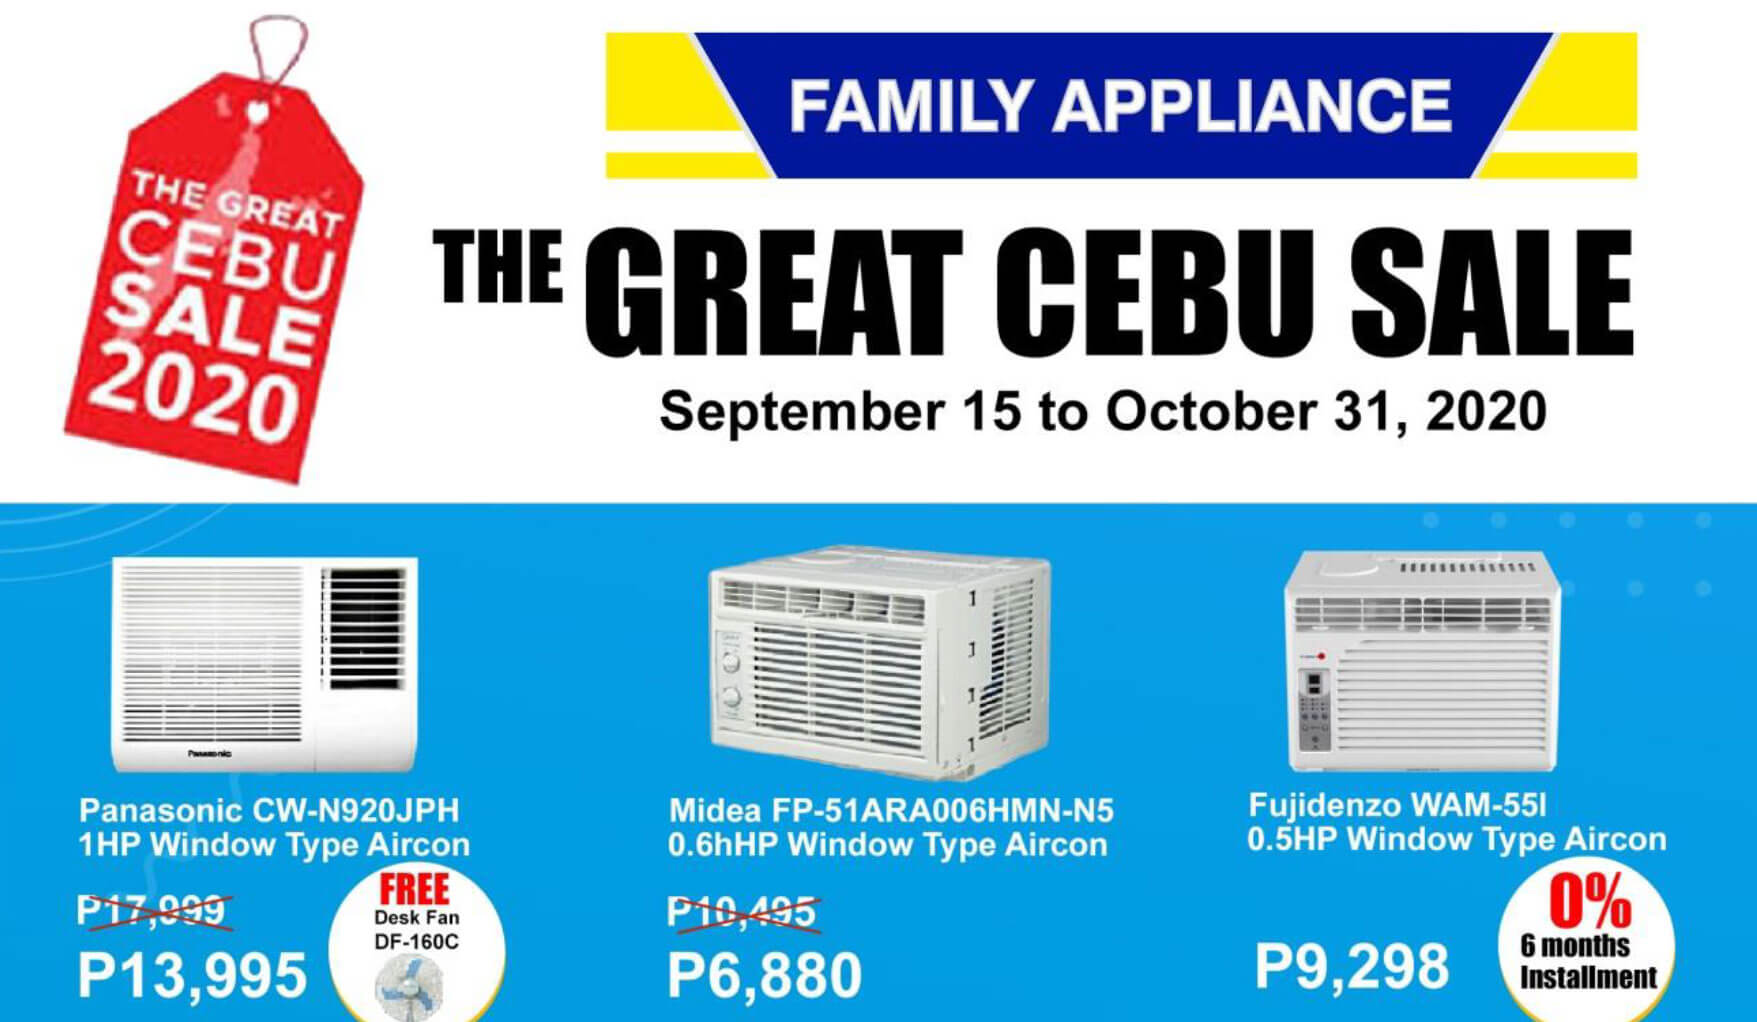 Family Appliance offers discounts on appliances